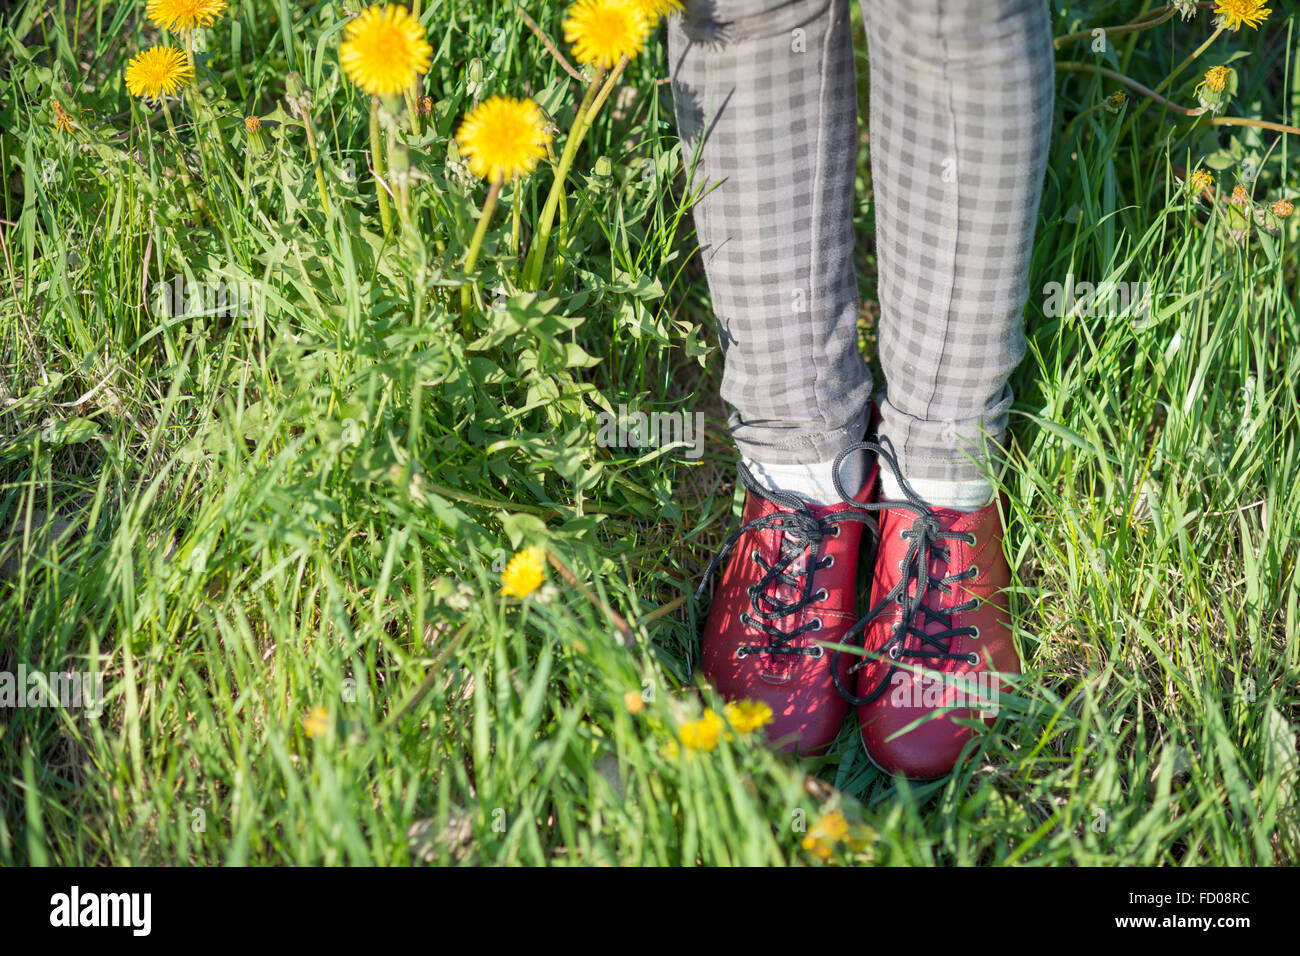 legs in red shoes in green grass with blossom dandelions - Stock Image